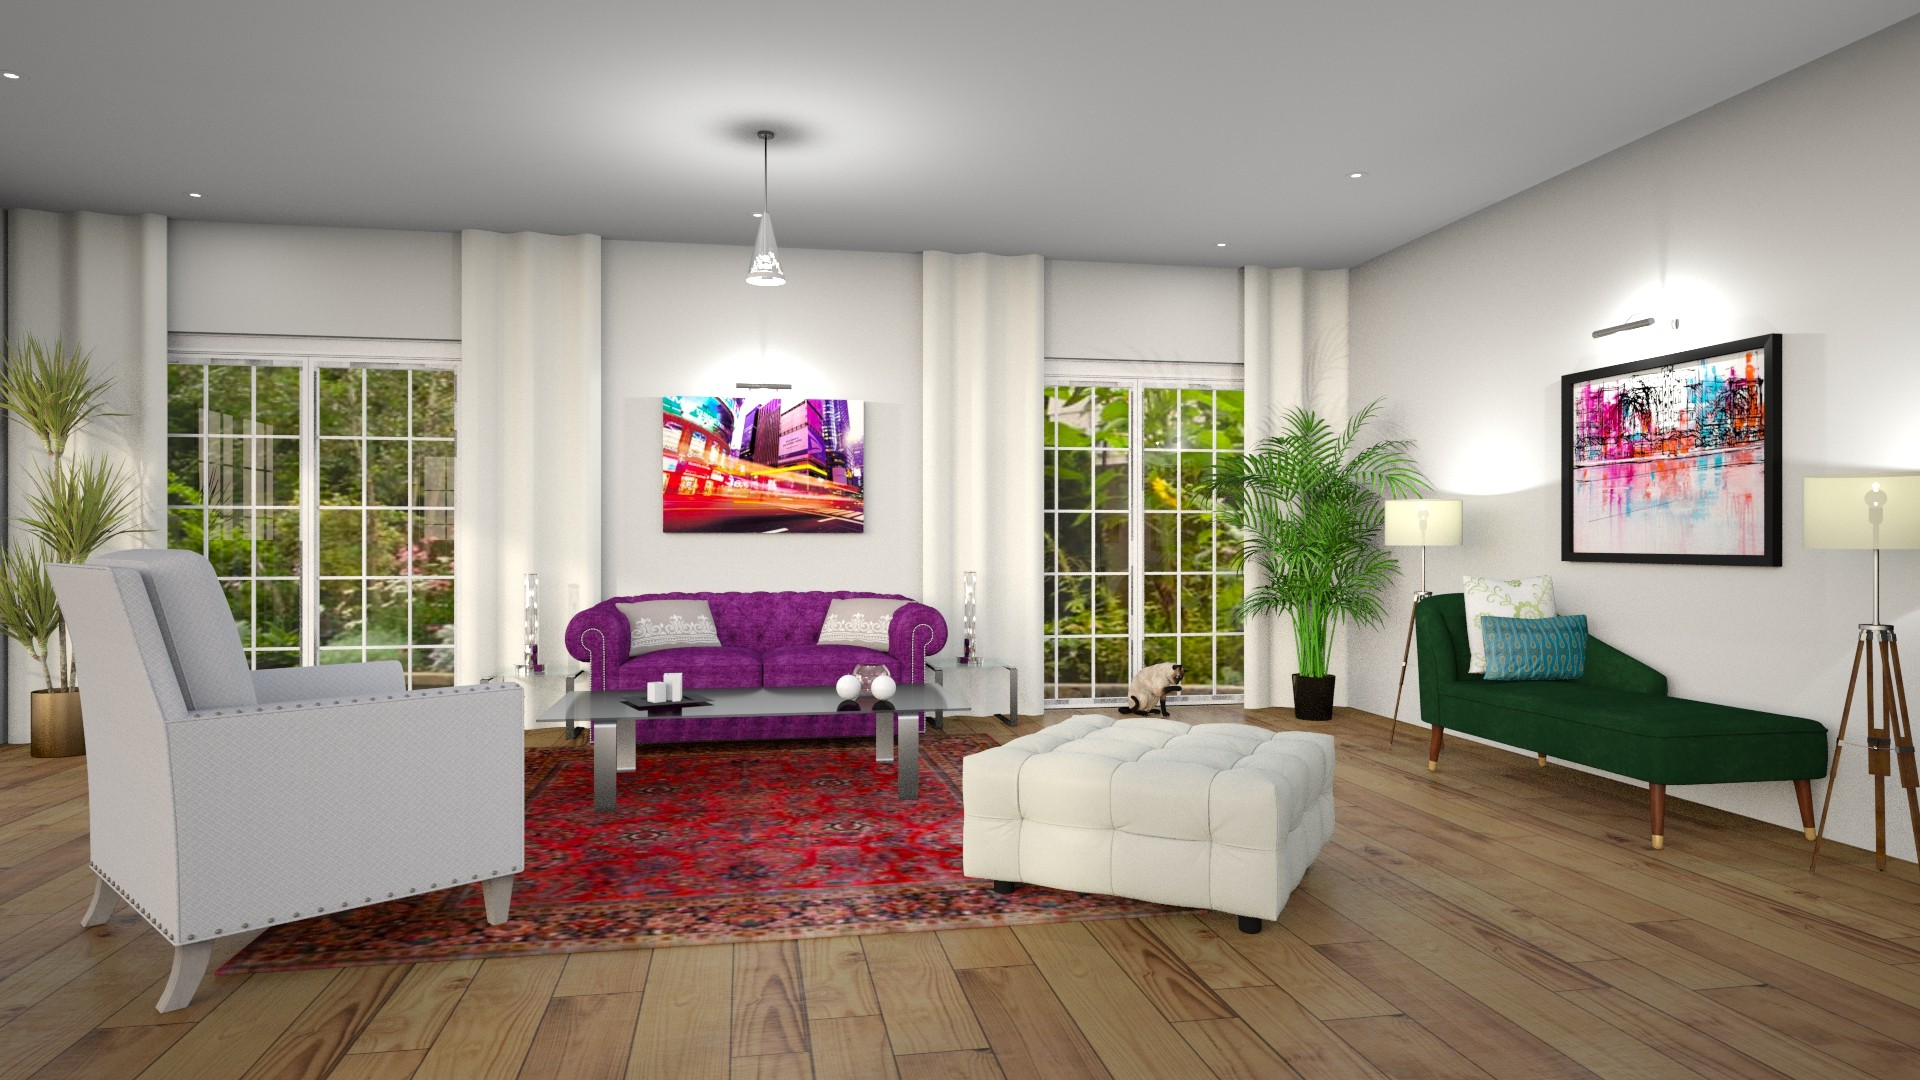 Modern Global Edesign of a Living room by Northern Lights Home Staging and Design using Benjamin Moore's Barely There.